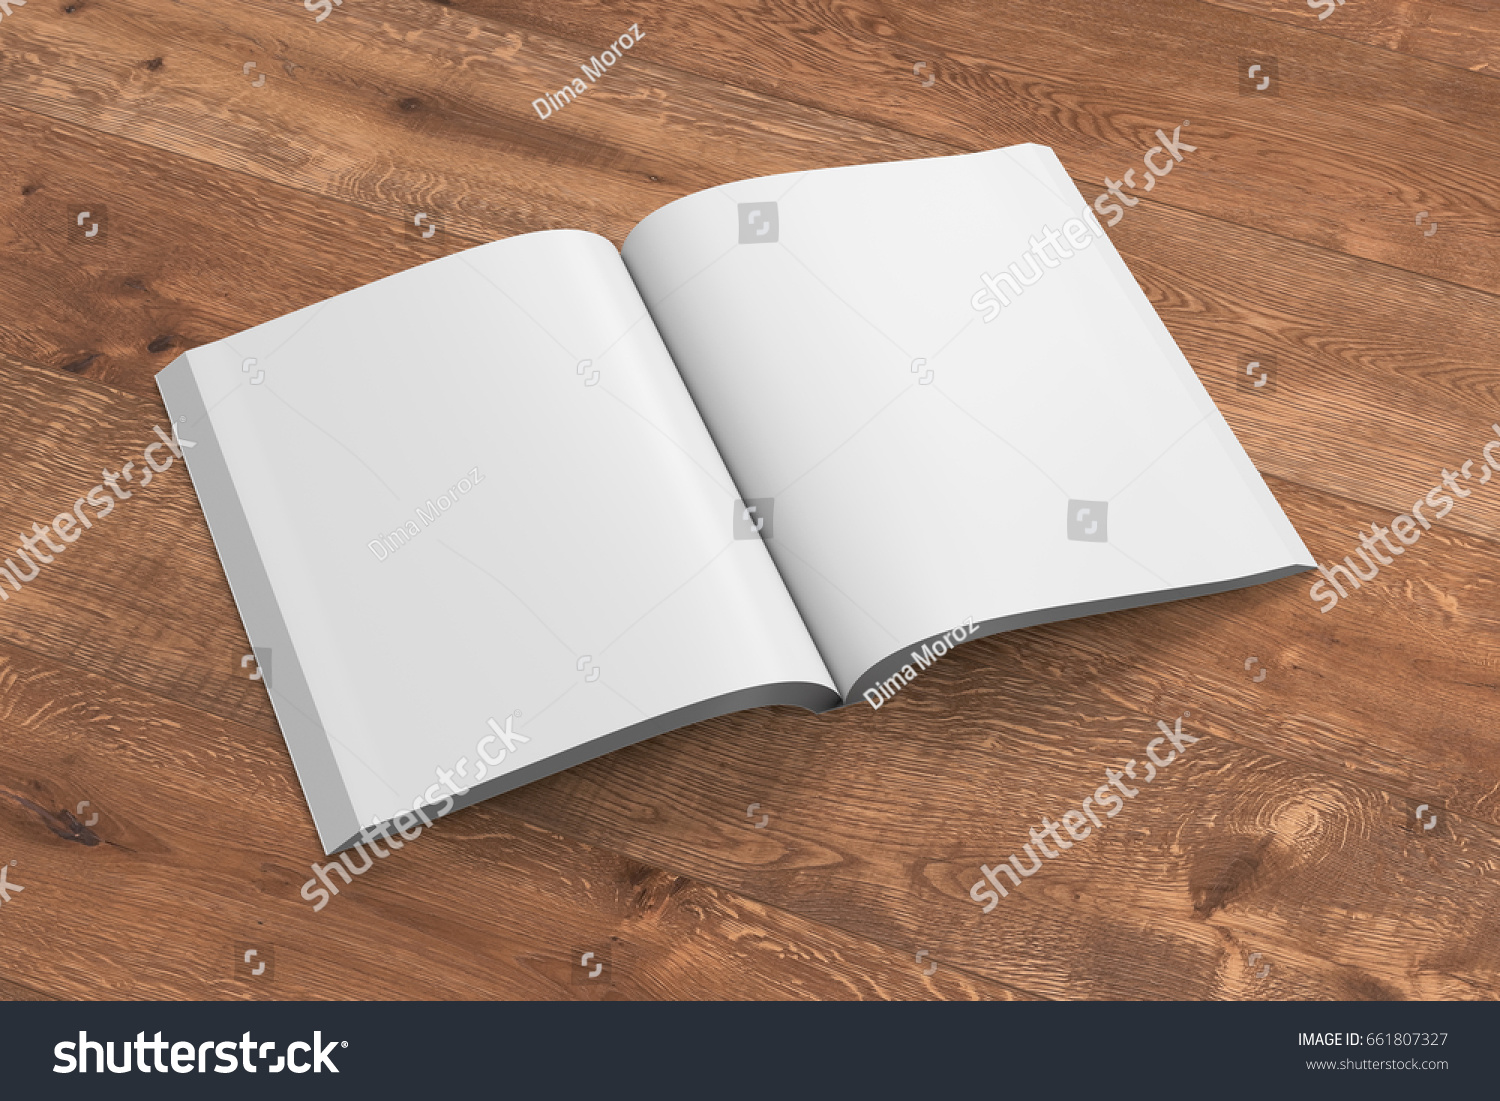 Glossy Book Cover Paper ~ Blank pages open portrait soft cover stock illustration